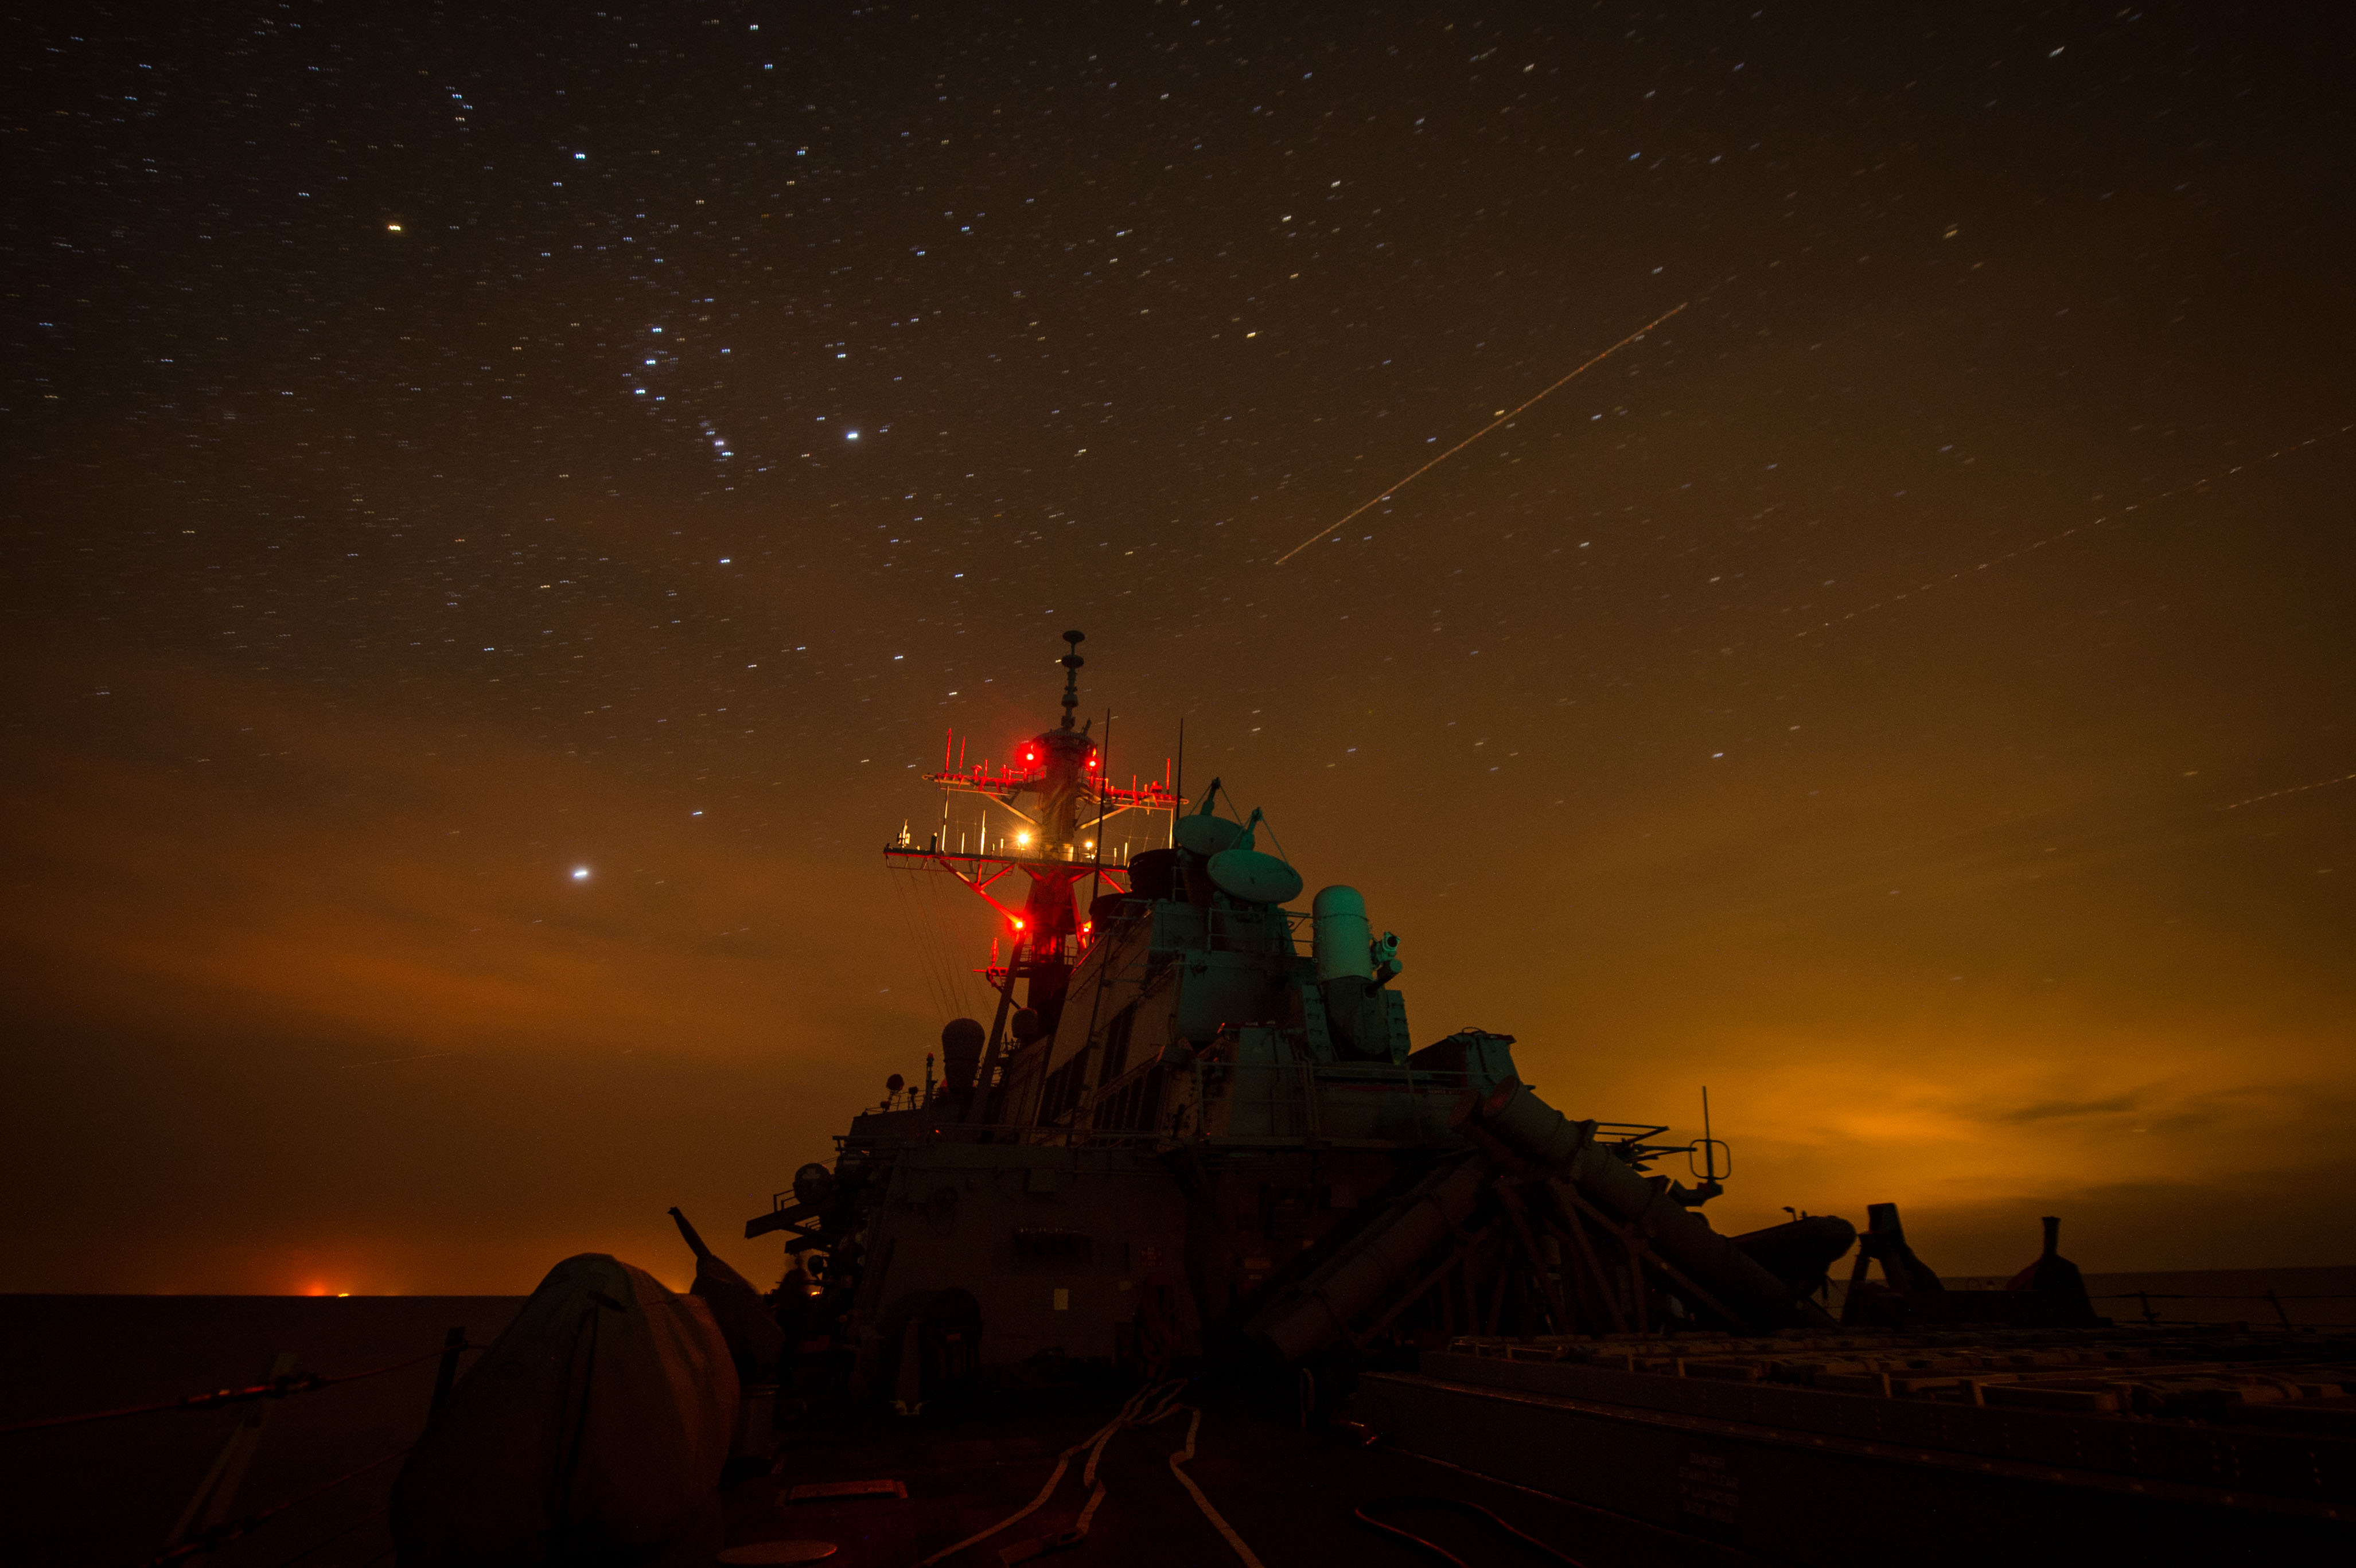 ARABIAN GULF (Dec. 15, 2014) The guided-missile destroyer USS Mitscher (DDG 57) lights up its mast during night delayed landing qualifications with the Desert Hawks of Helicopter Sea Combat Squadron (HSC) 26. Mitscher is deployed in the U.S. 5th Fleet area of responsibility supporting Operation Inherent Resolve, strike operations in Iraq and Syria as directed, maritime security operations, and theater security cooperation efforts in the region.(U.S. Navy photo by Mass Communication Specialist 2nd Class Anthony R. Martinez/Released)